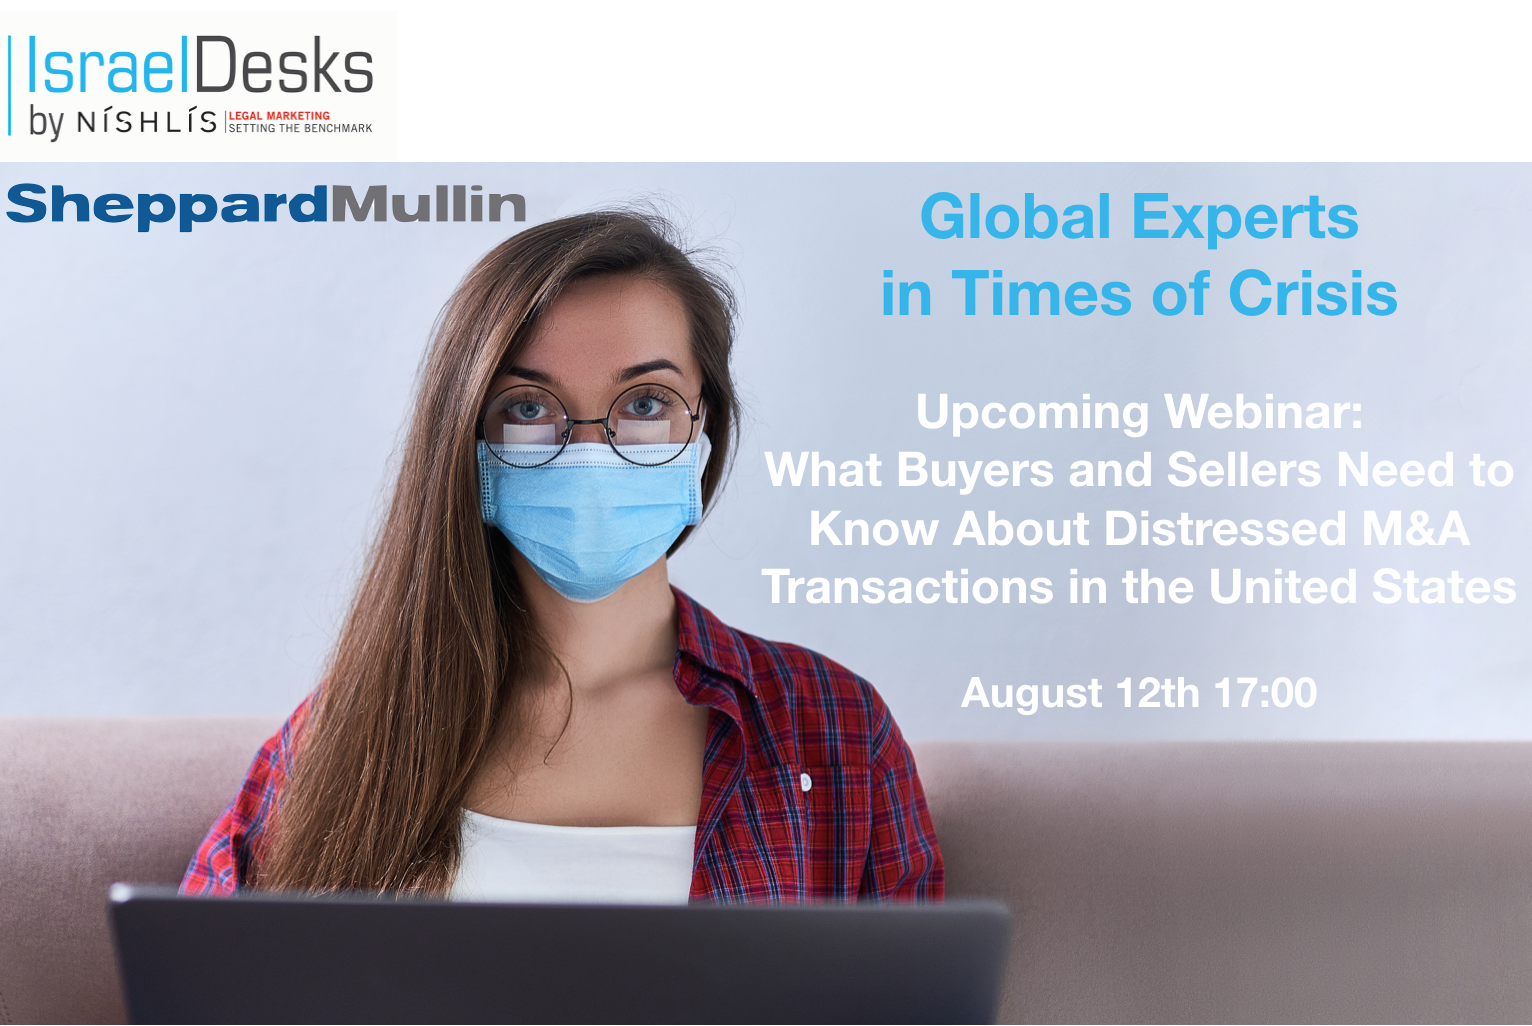 What Buyers and Sellers Need to Know About Distressed M&A Transactions in the United States – Webinar